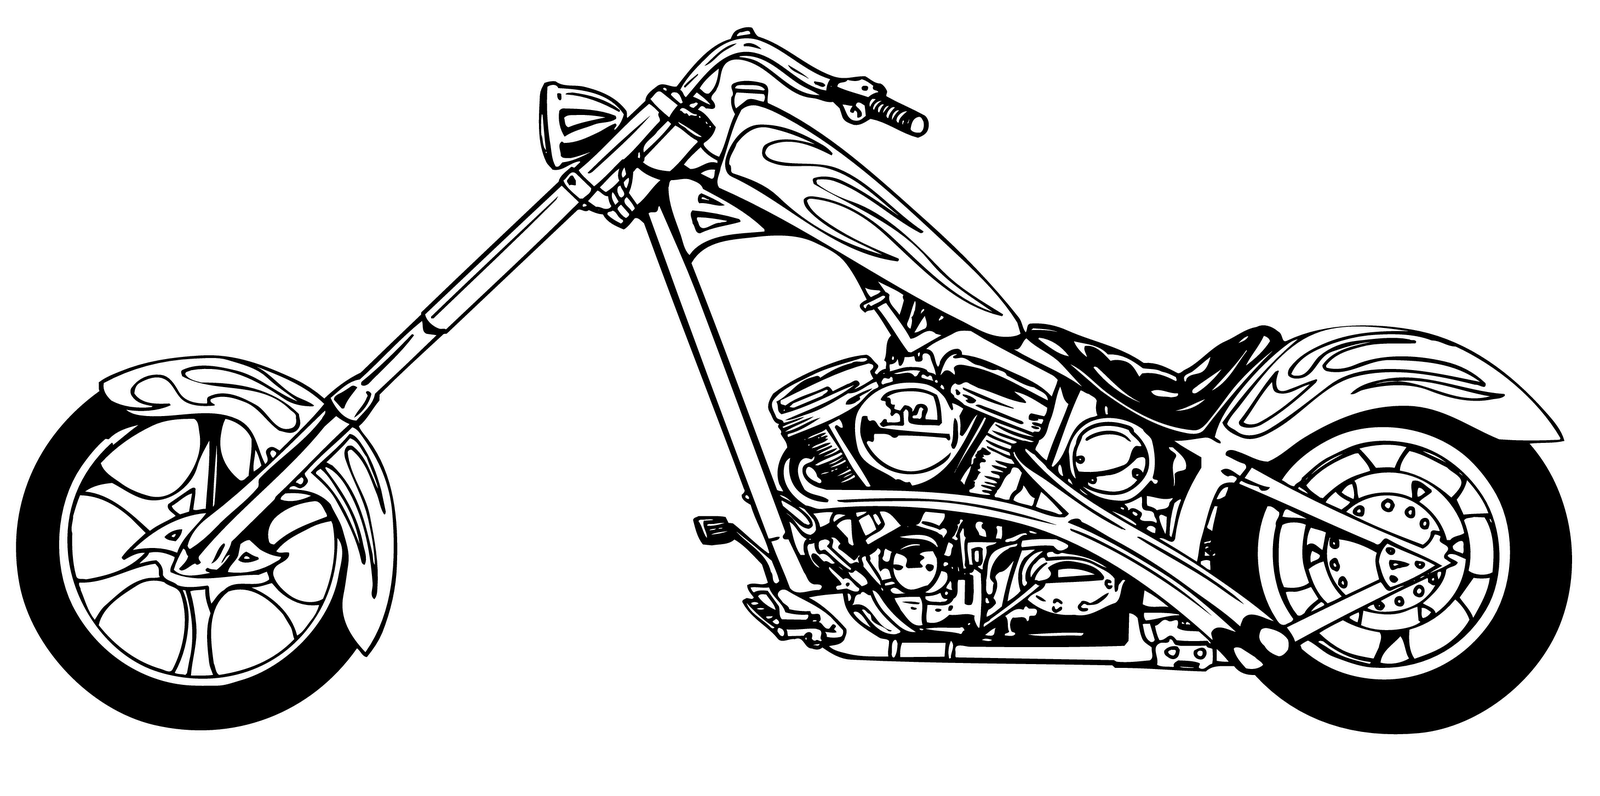 hight resolution of harley davidson harley motorcycle black and white clipart 2